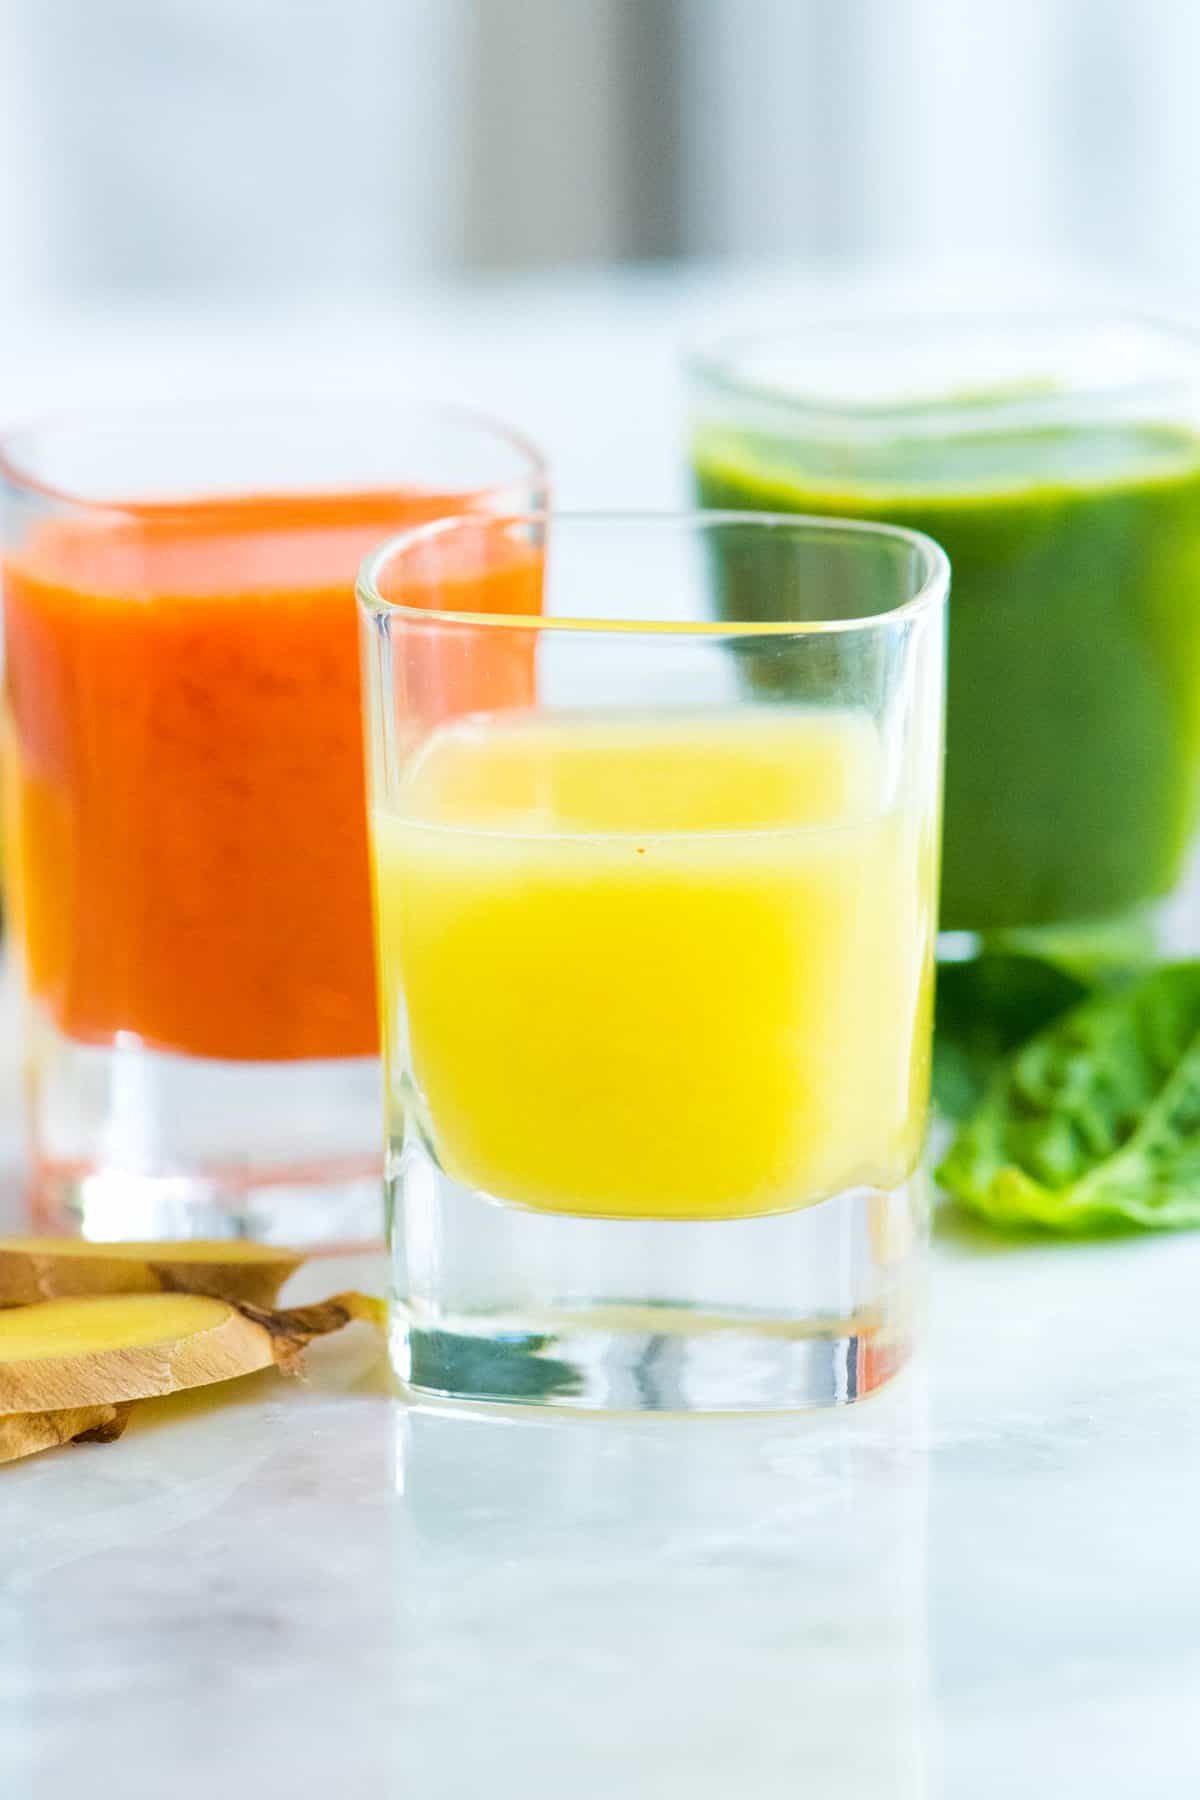 Three Ginger Power Shot Recipes including Lemon Ginger, Carrot Ginger and a Green Apple Ginger Shot